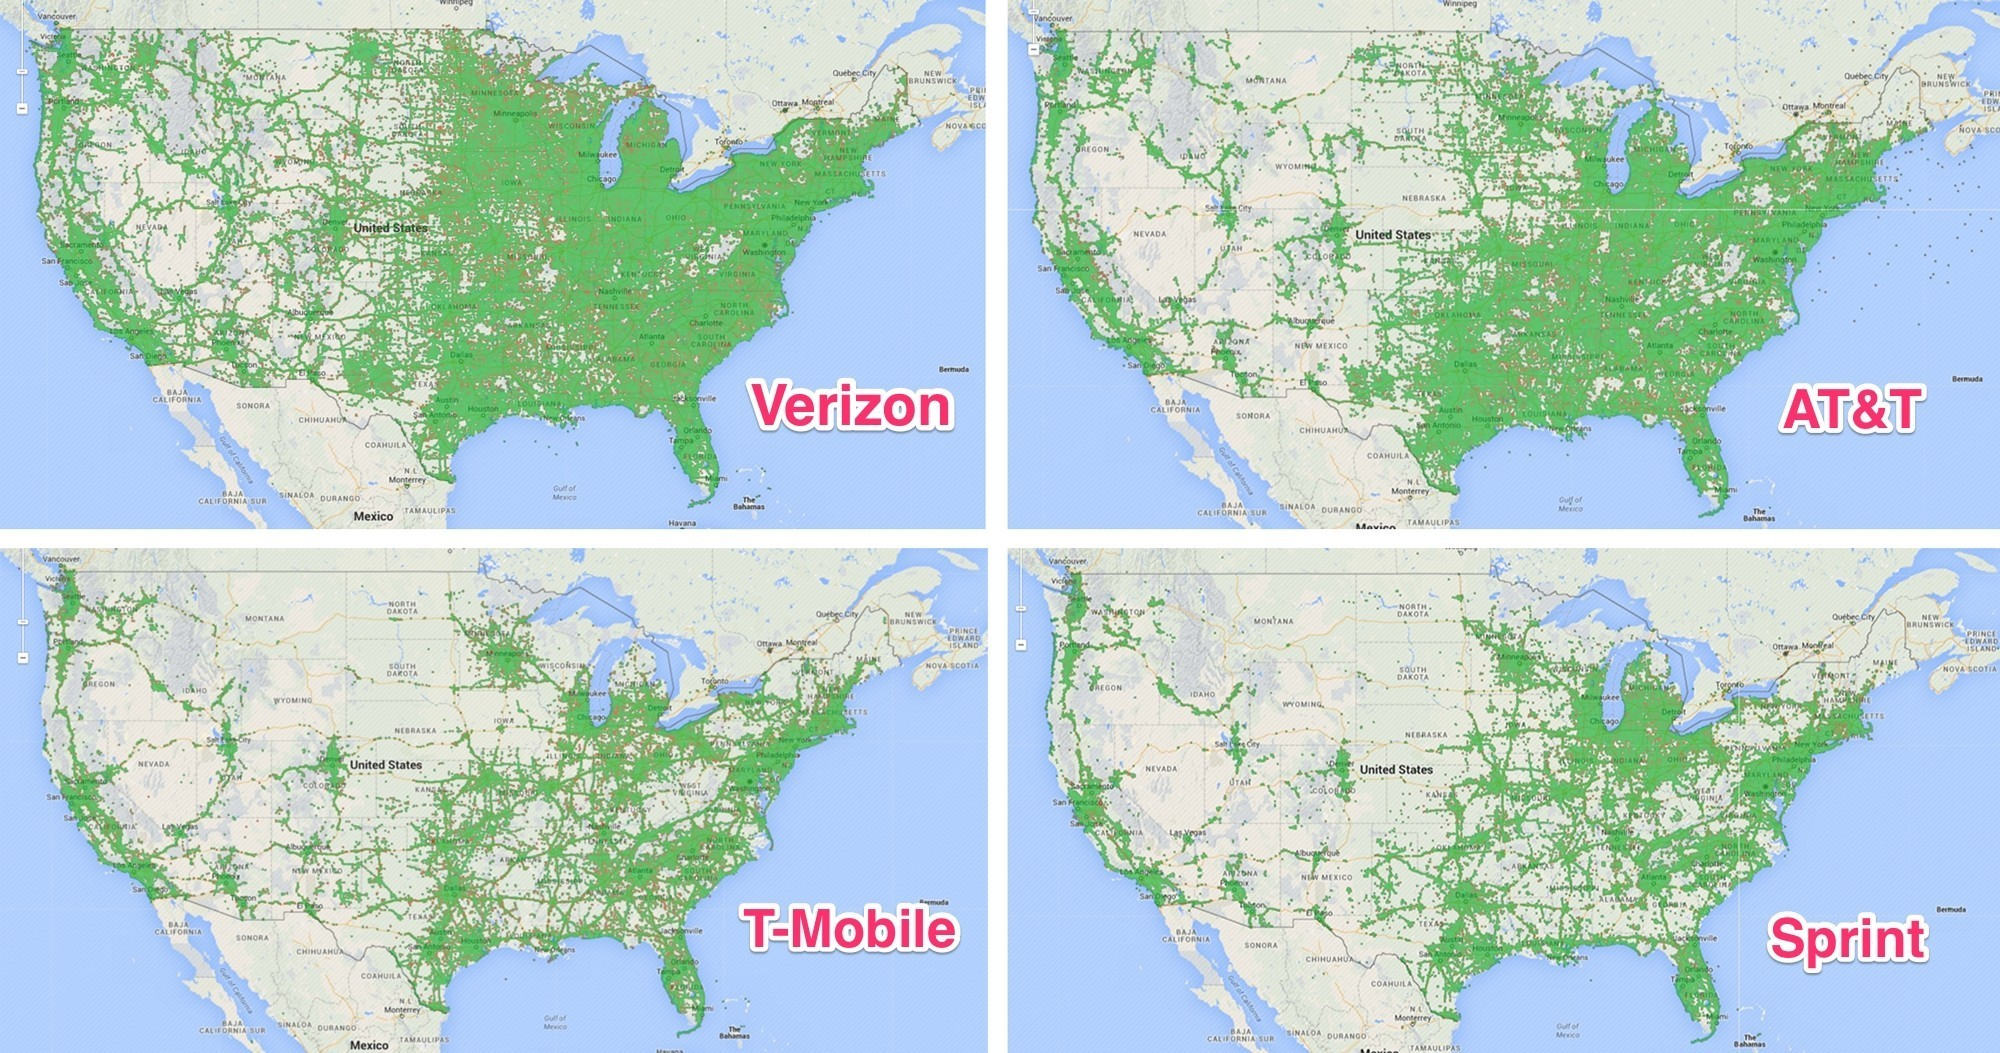 United States Map Of Sprint Coverage Fresh Us Cellular Coverage Map - Sprint Coverage Map Florida